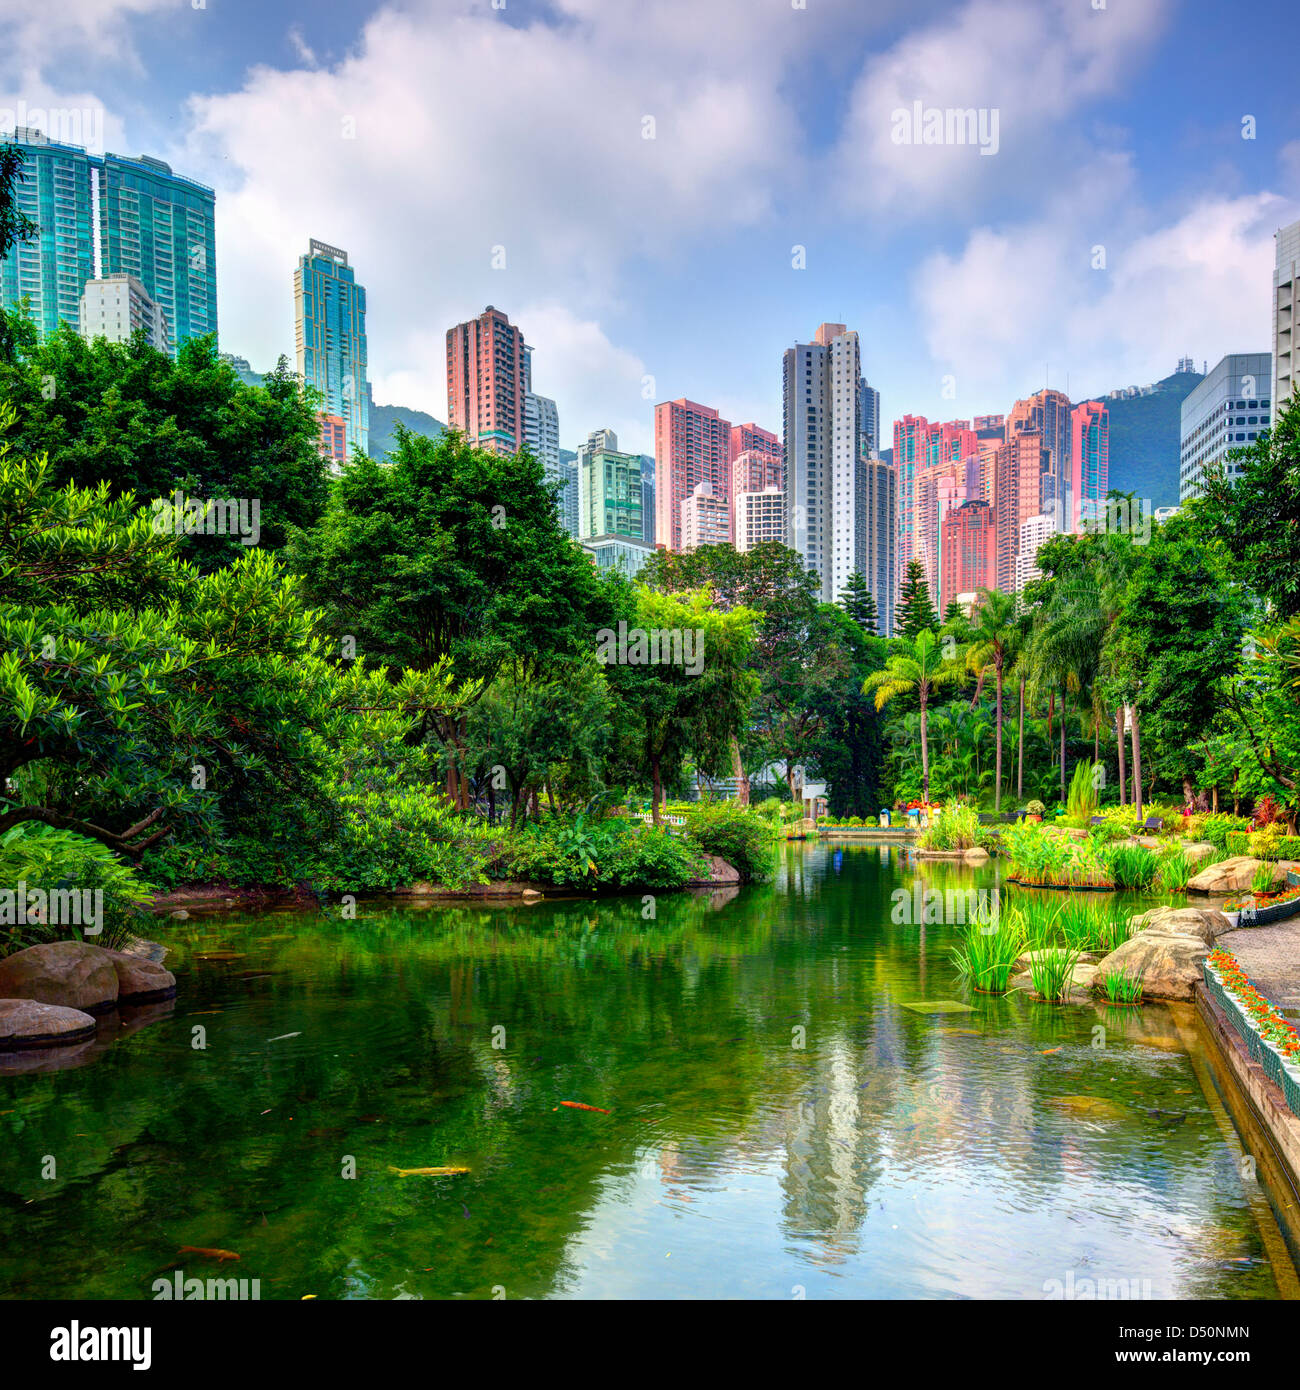 Pond and landscape of Hong Kong Park - Stock Image